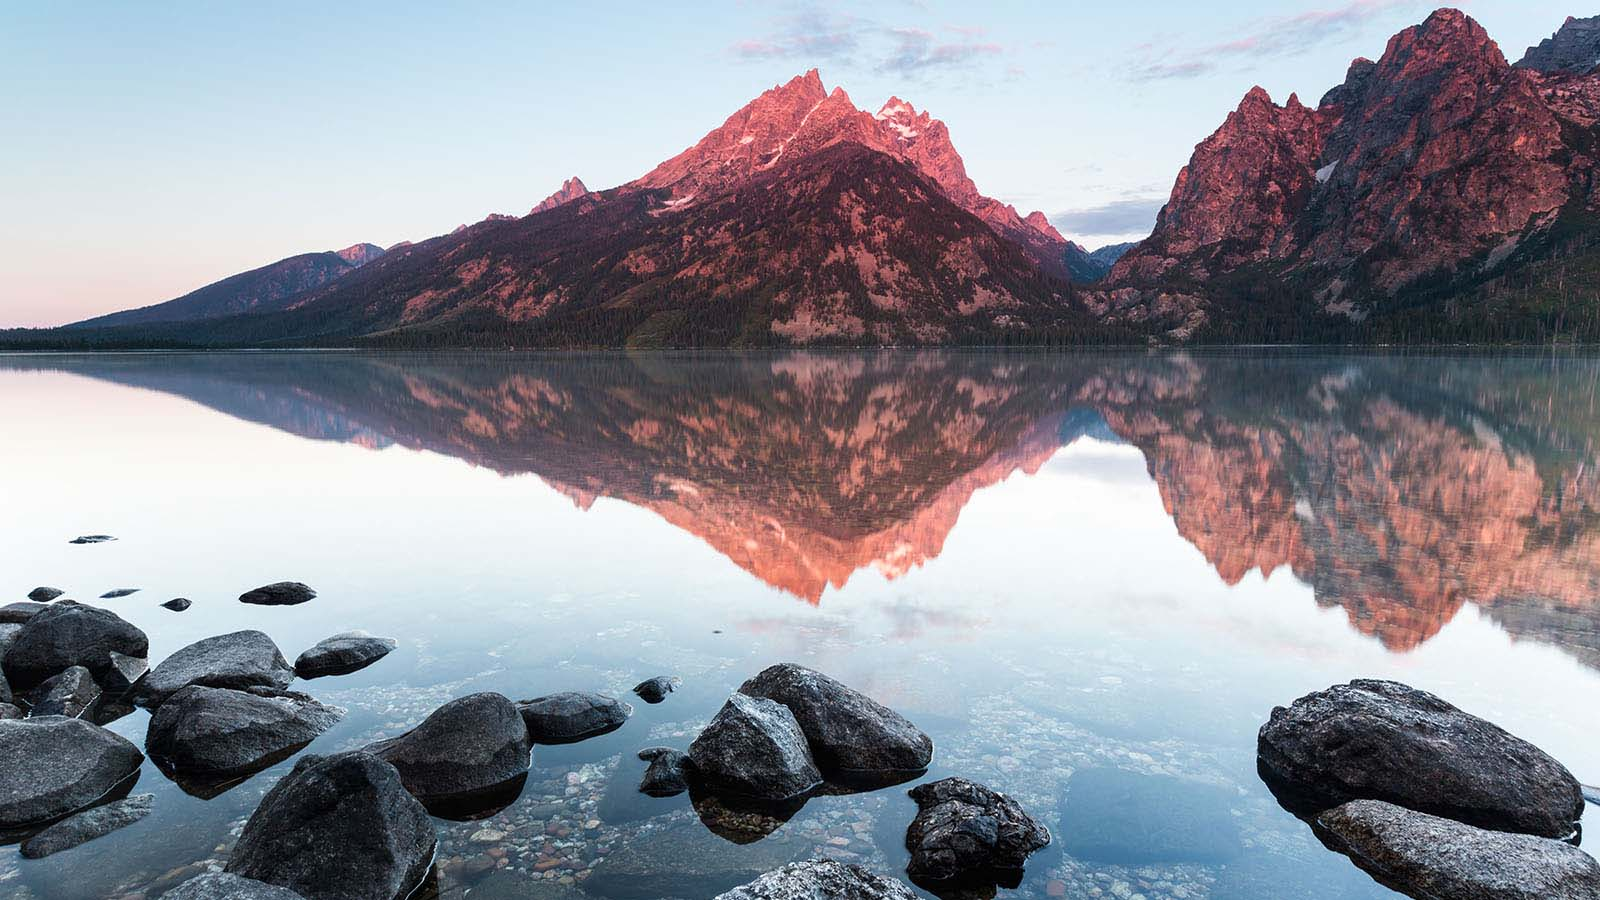 mountains reflecting into calm lake water